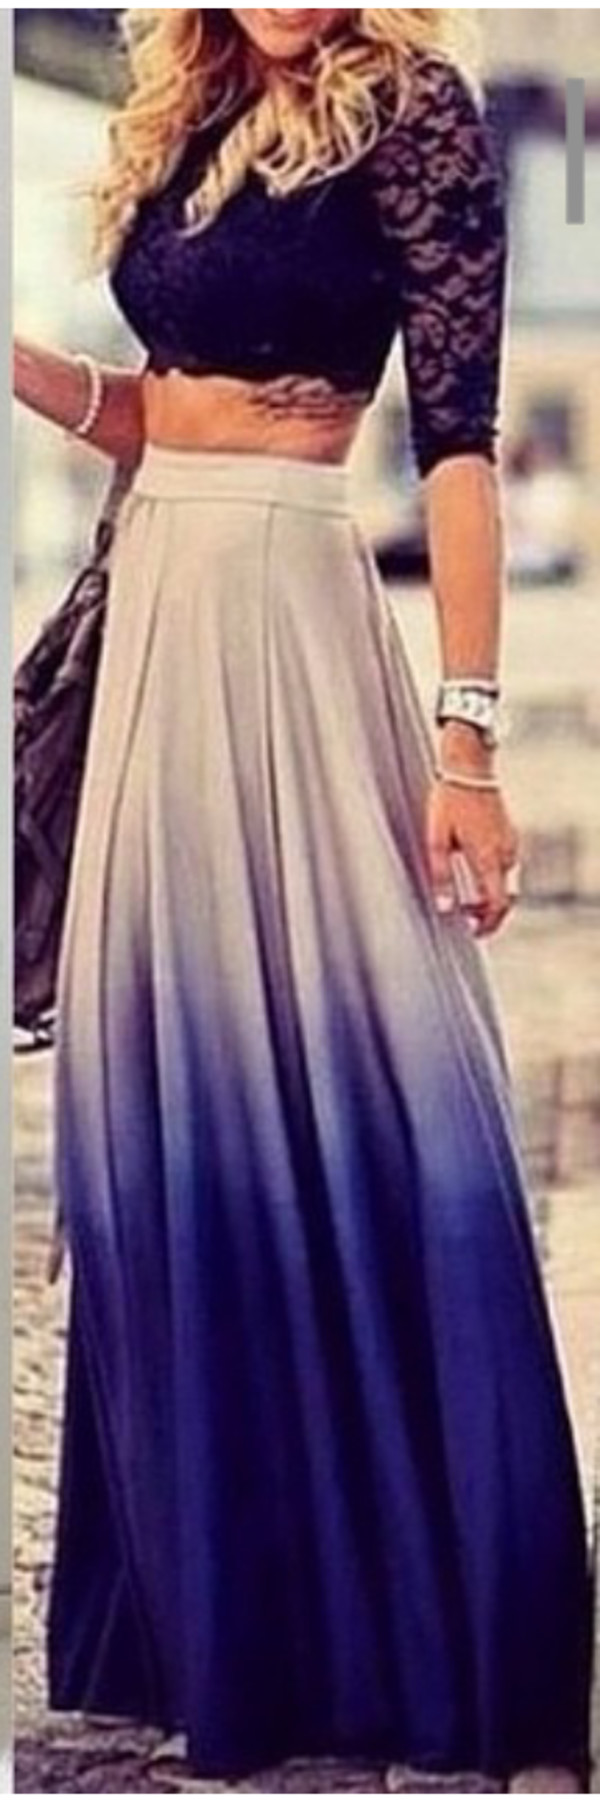 Ombre Maxi Skirt - Shop for Ombre Maxi Skirt on Wheretoget